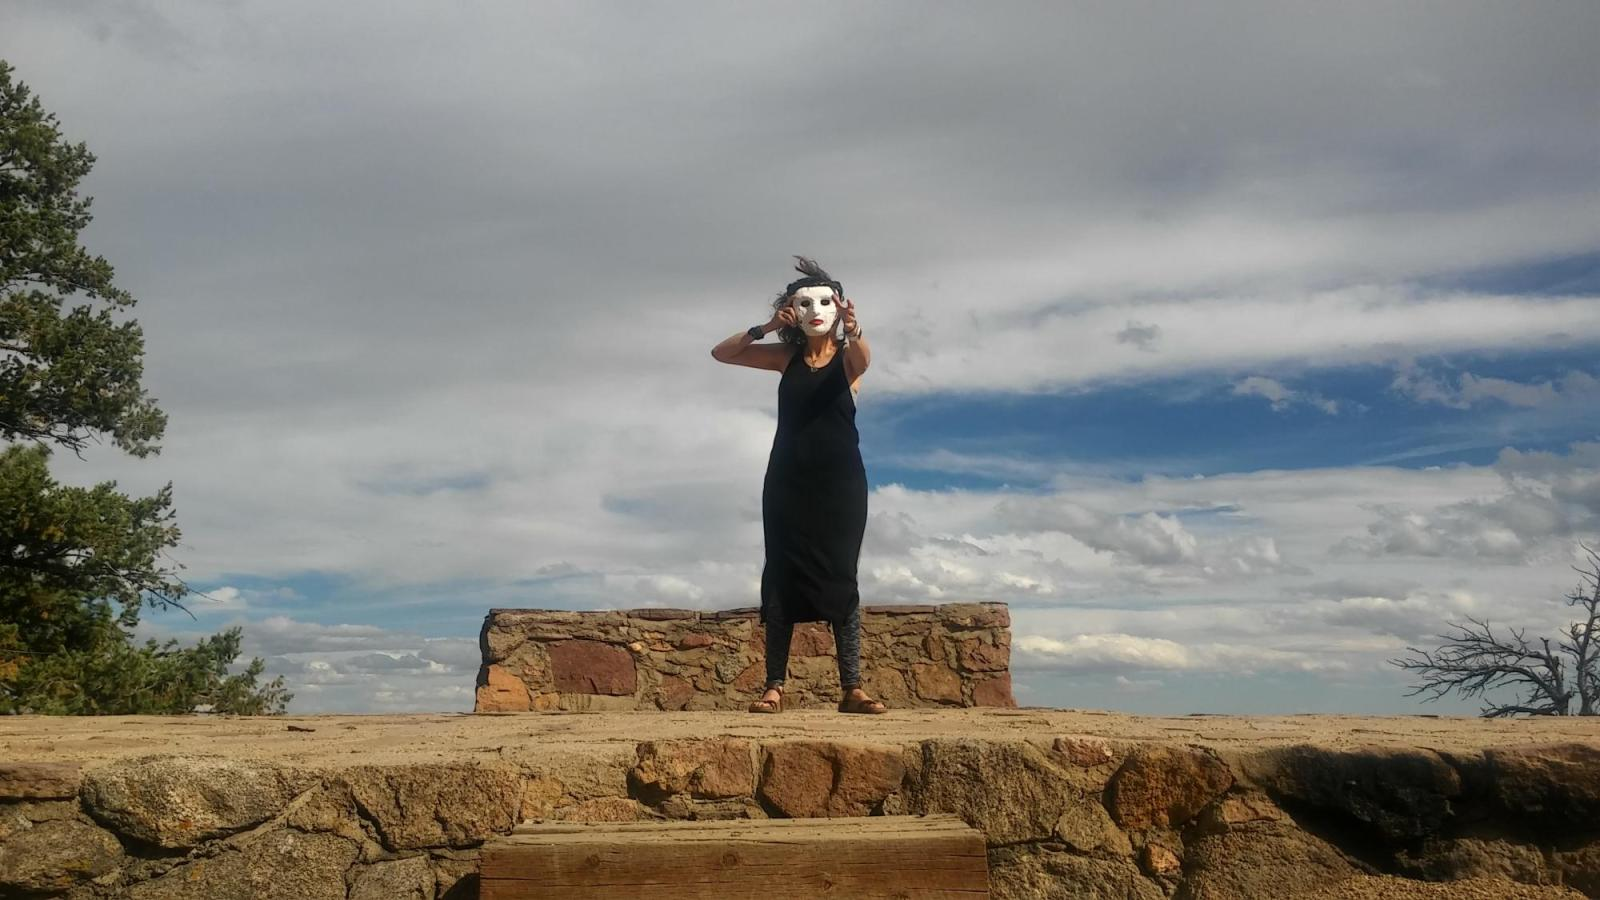 A masked performer reaches out from the top of a stone landing